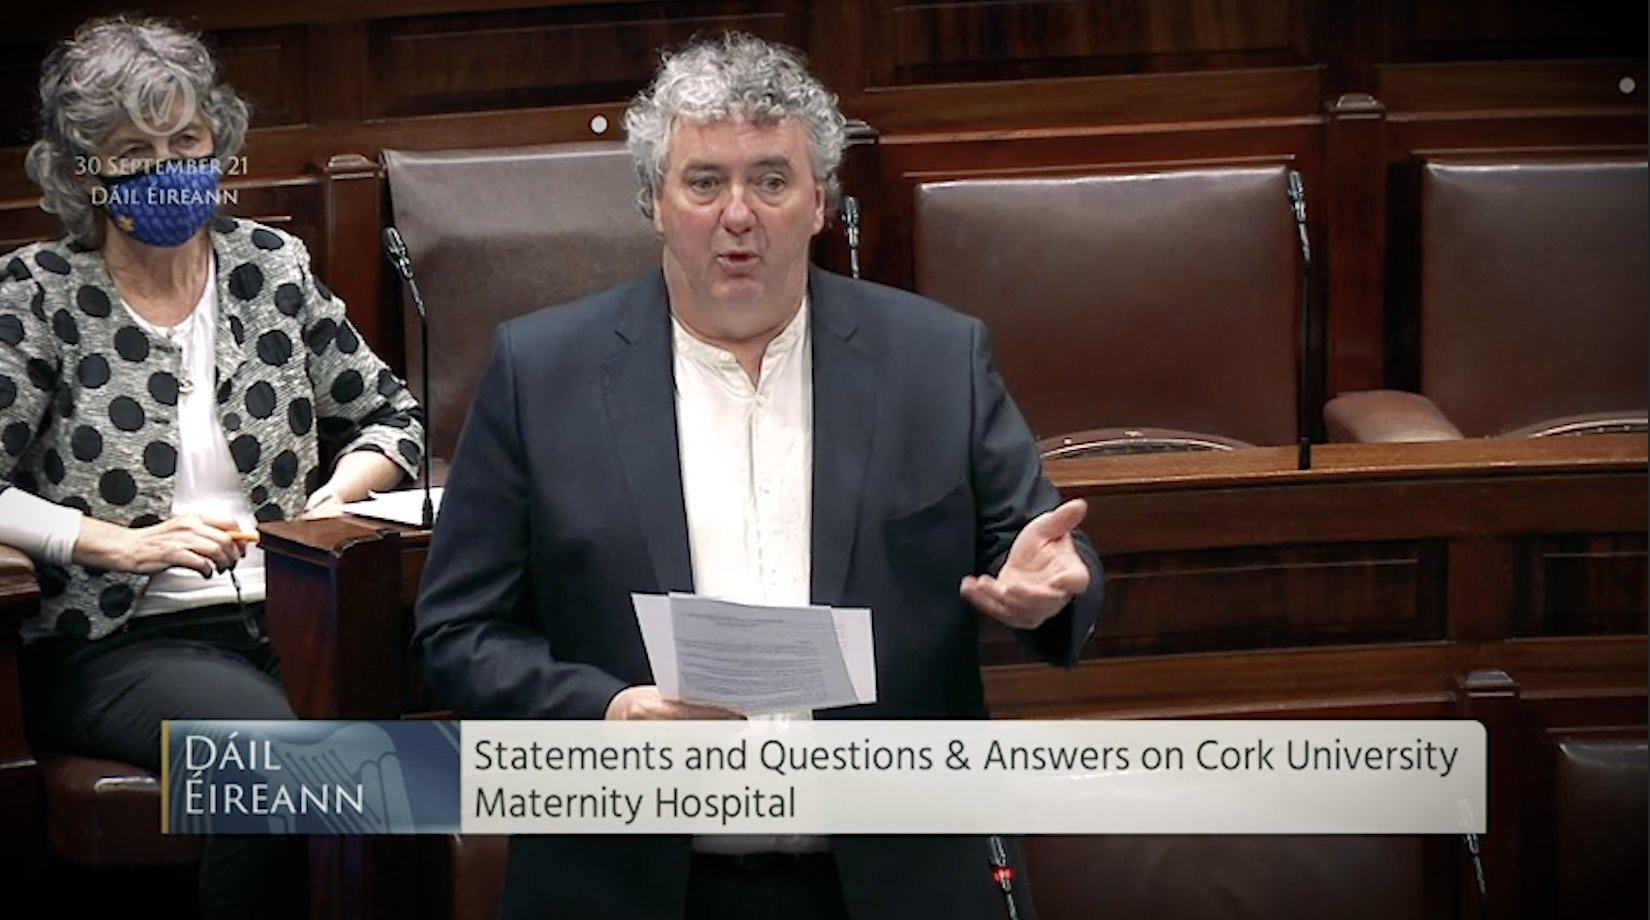 Pringle: Hospitals need to reassure bereaved parents